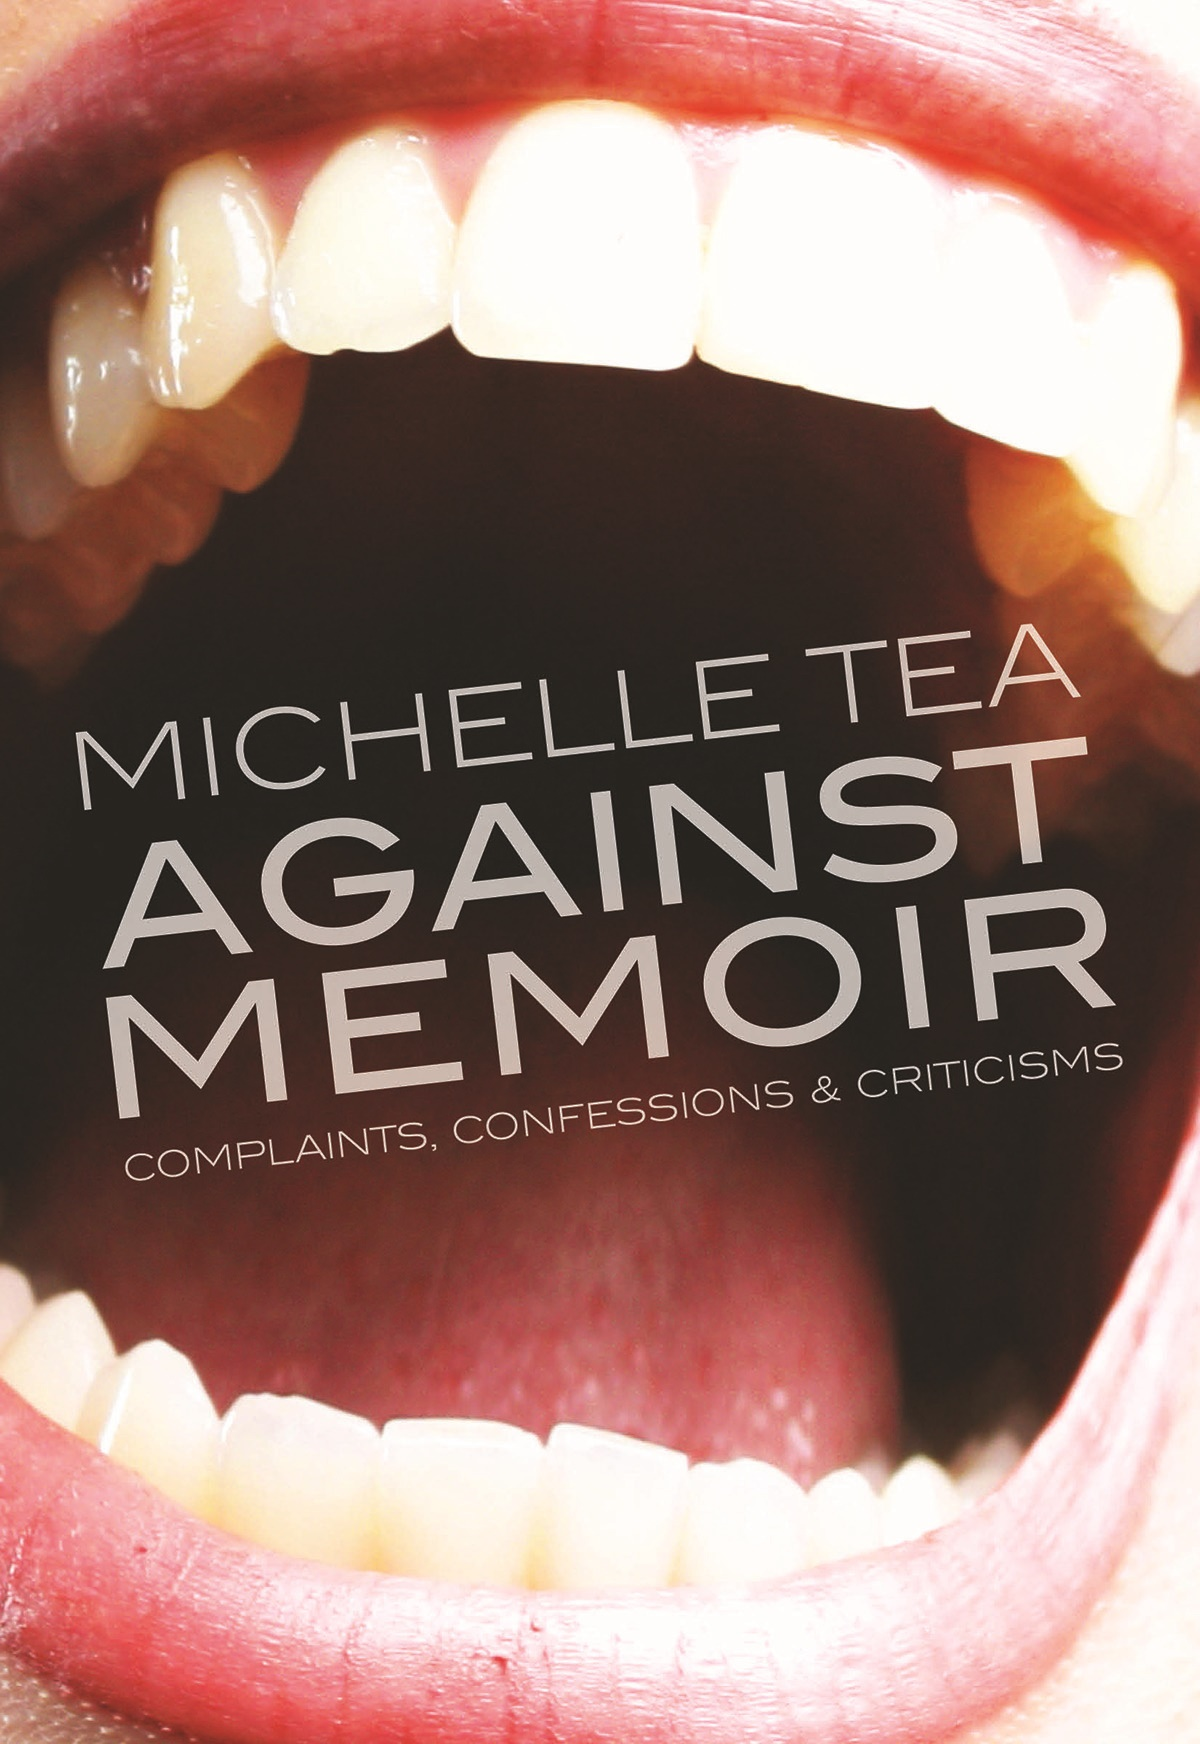 Against Memoir - by Michelle Tea (Feminist Press)For those who bear unnecessary disdain for the pigeons of New York CityMost anticipated 2019 FP book: The Summer of Dead Birds by Ali Liebegott